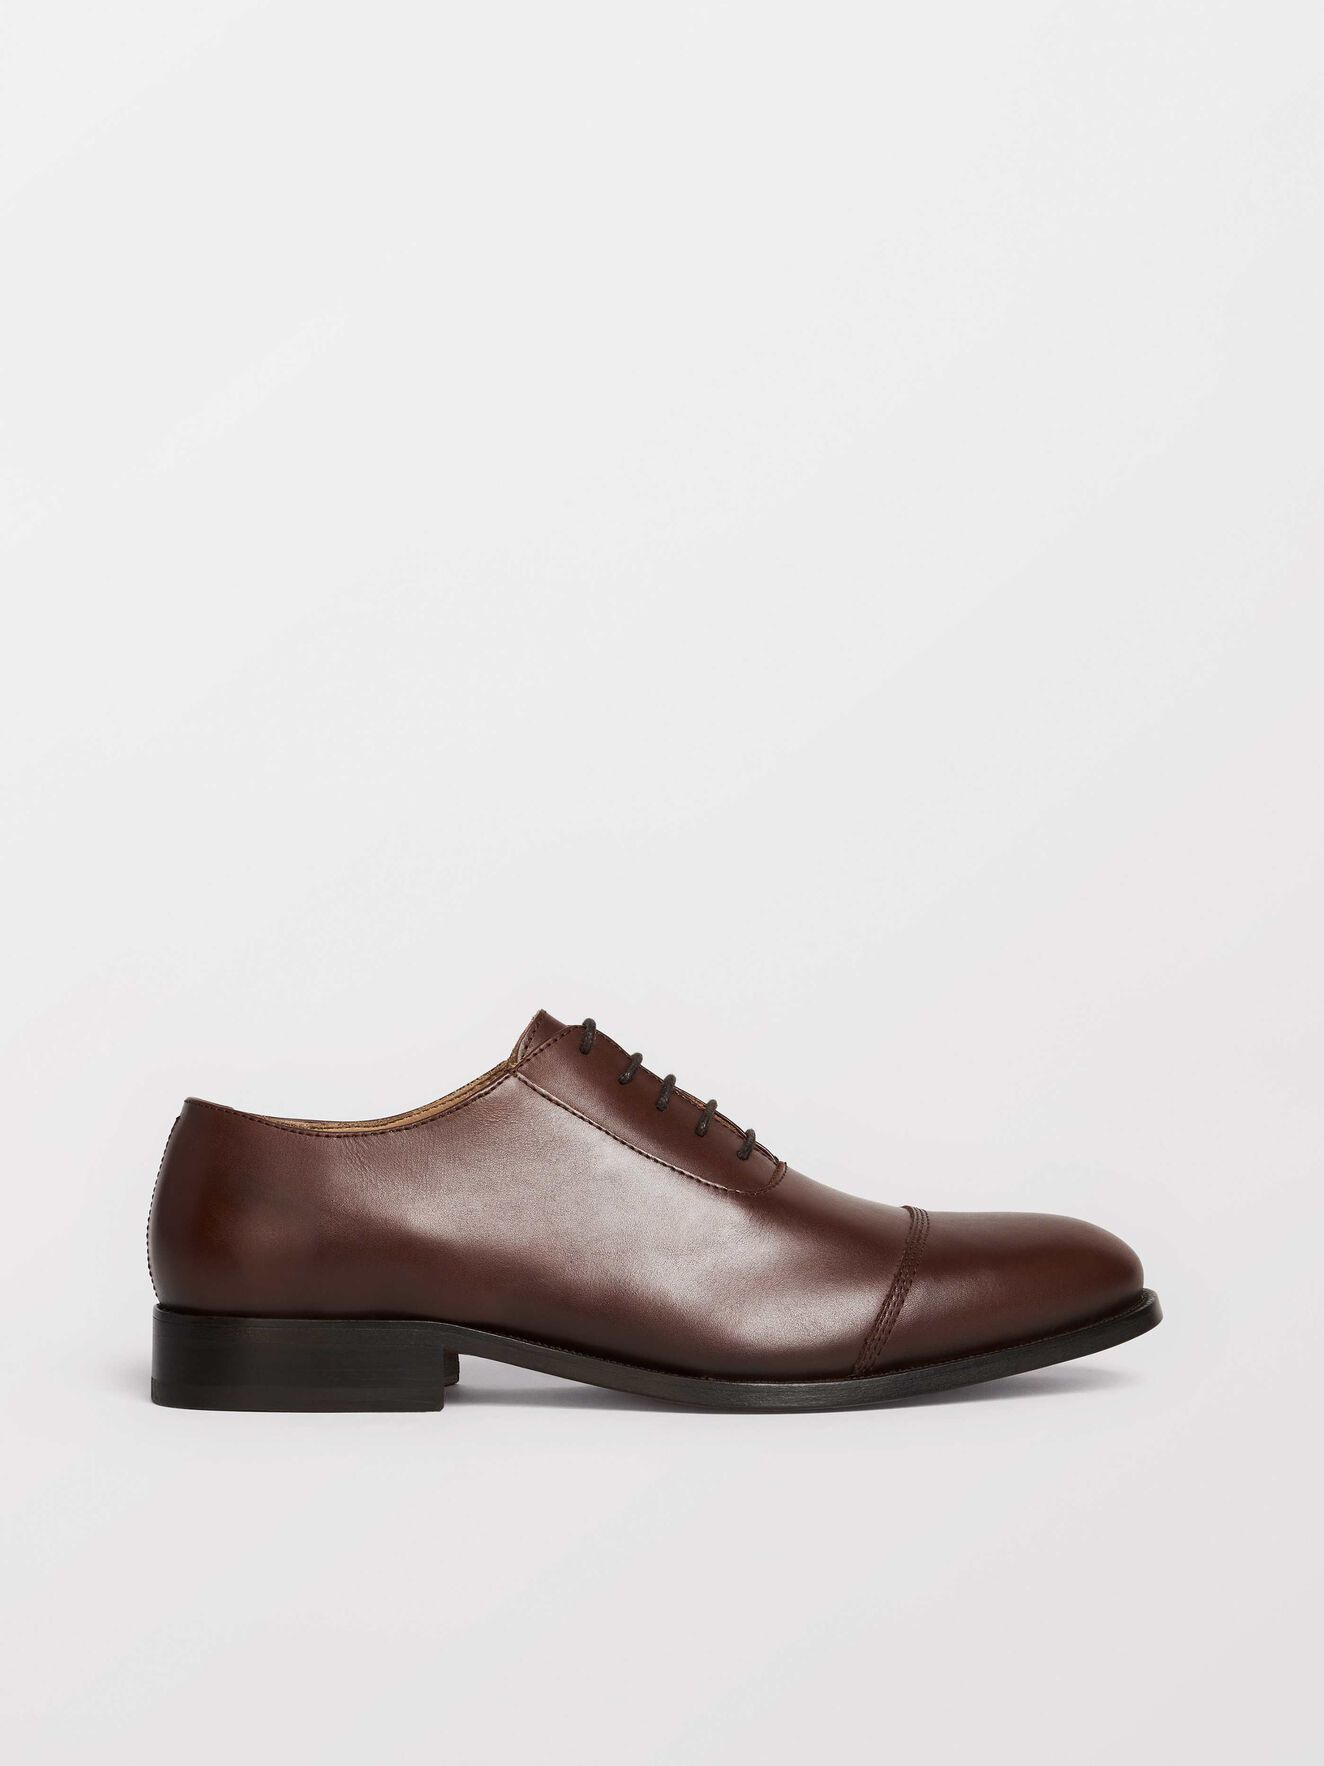 Lundh Schuh in Cognac from Tiger of Sweden